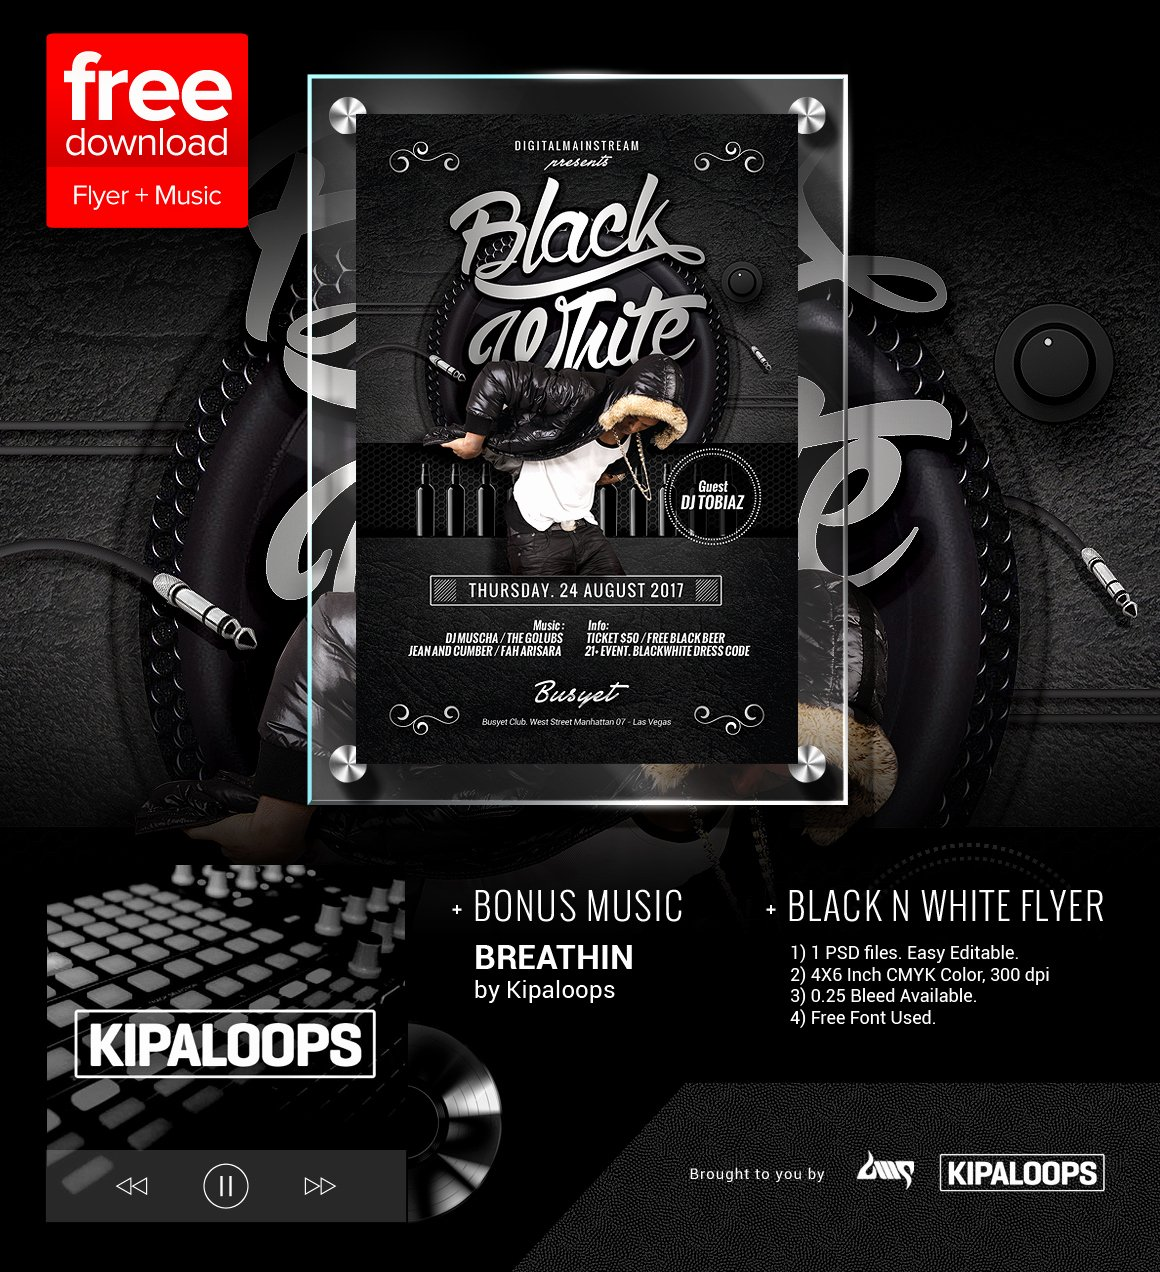 Black and White Flyer Luxury Free Black and White Club Flyer Template Music by